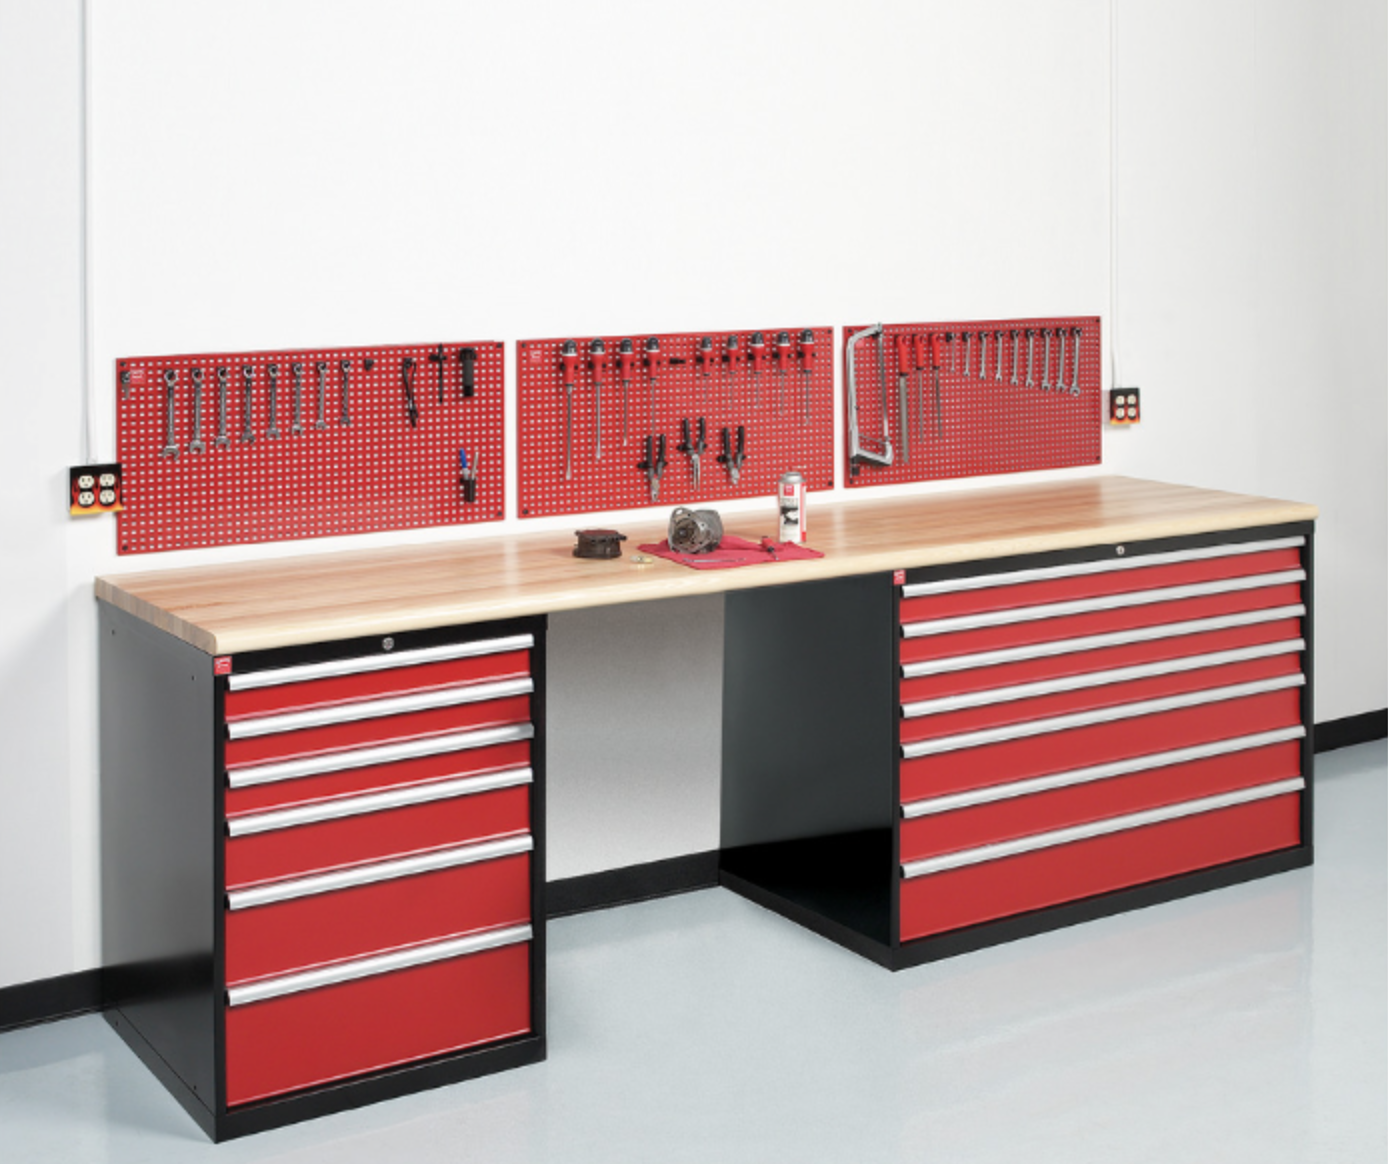 workstation cabinets slatwall transformations overhead recycle tire after wall station canoe storage refrigerator car rear work garbage garage brampton iconic right nuvo